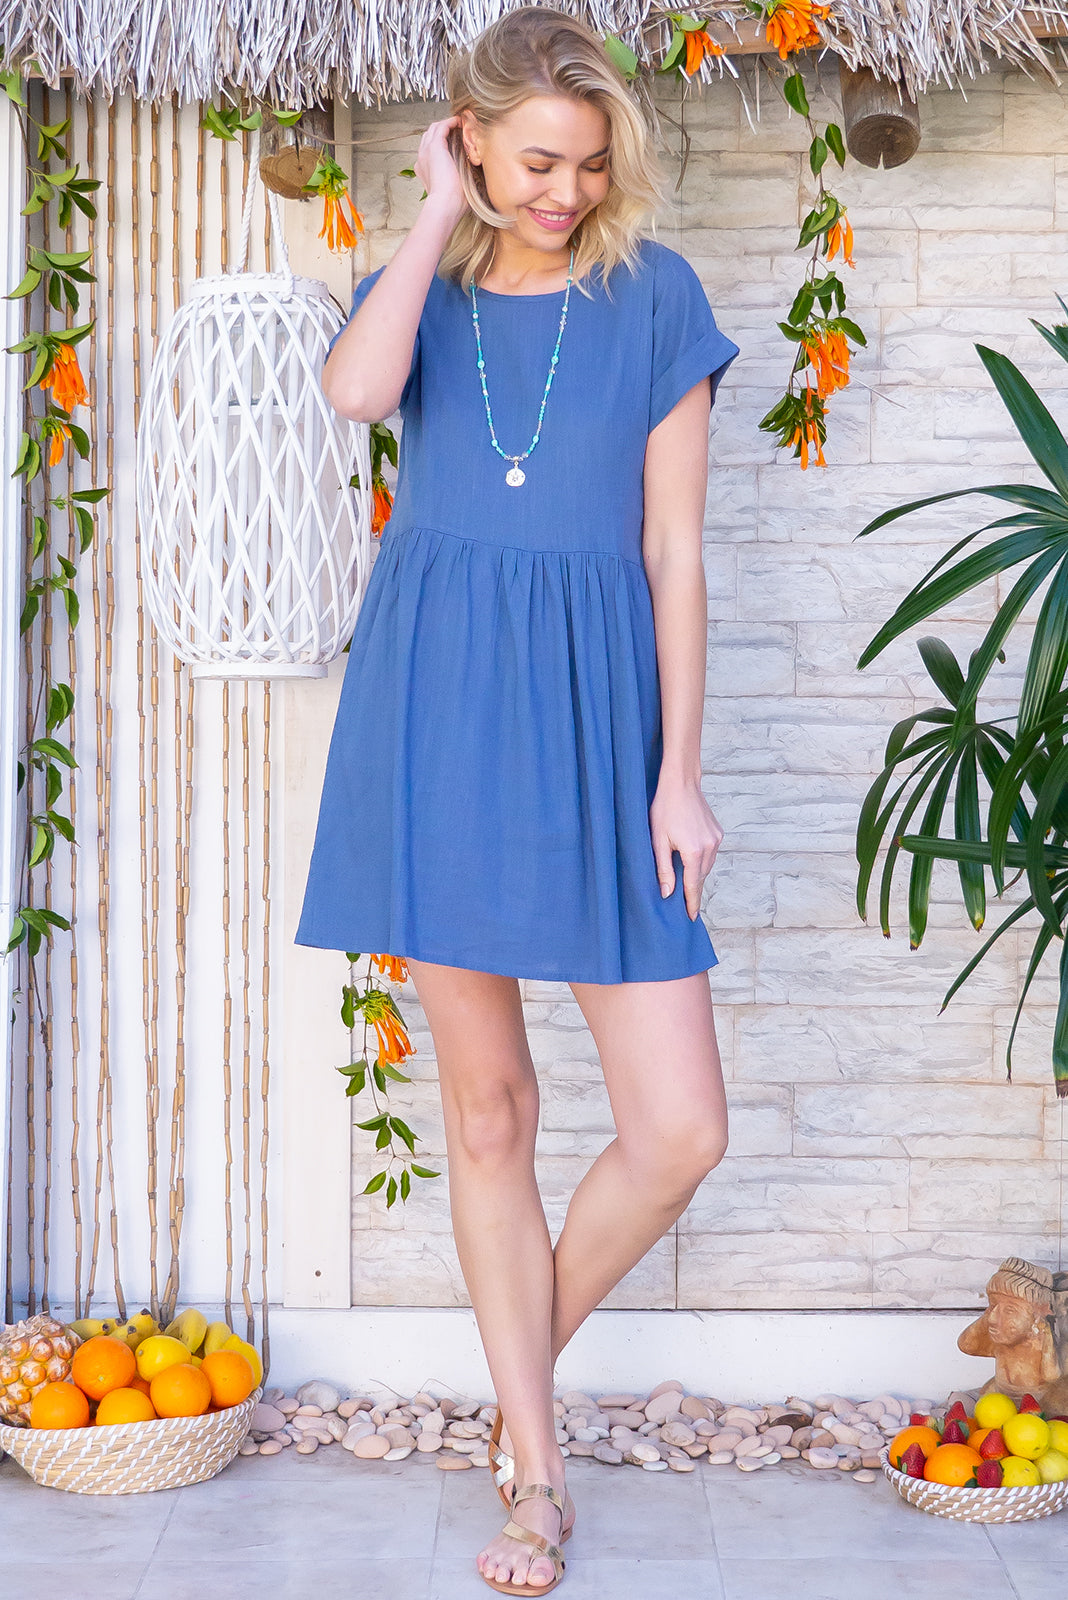 The Blue Moon Horizon Blue Dress is a loose fit, easy to wear frock featuring cuffed sleeves, drop waist, buttons and tabs at waist, side pockets and 30% Linen/ 70% Viscose in denim blue colour.